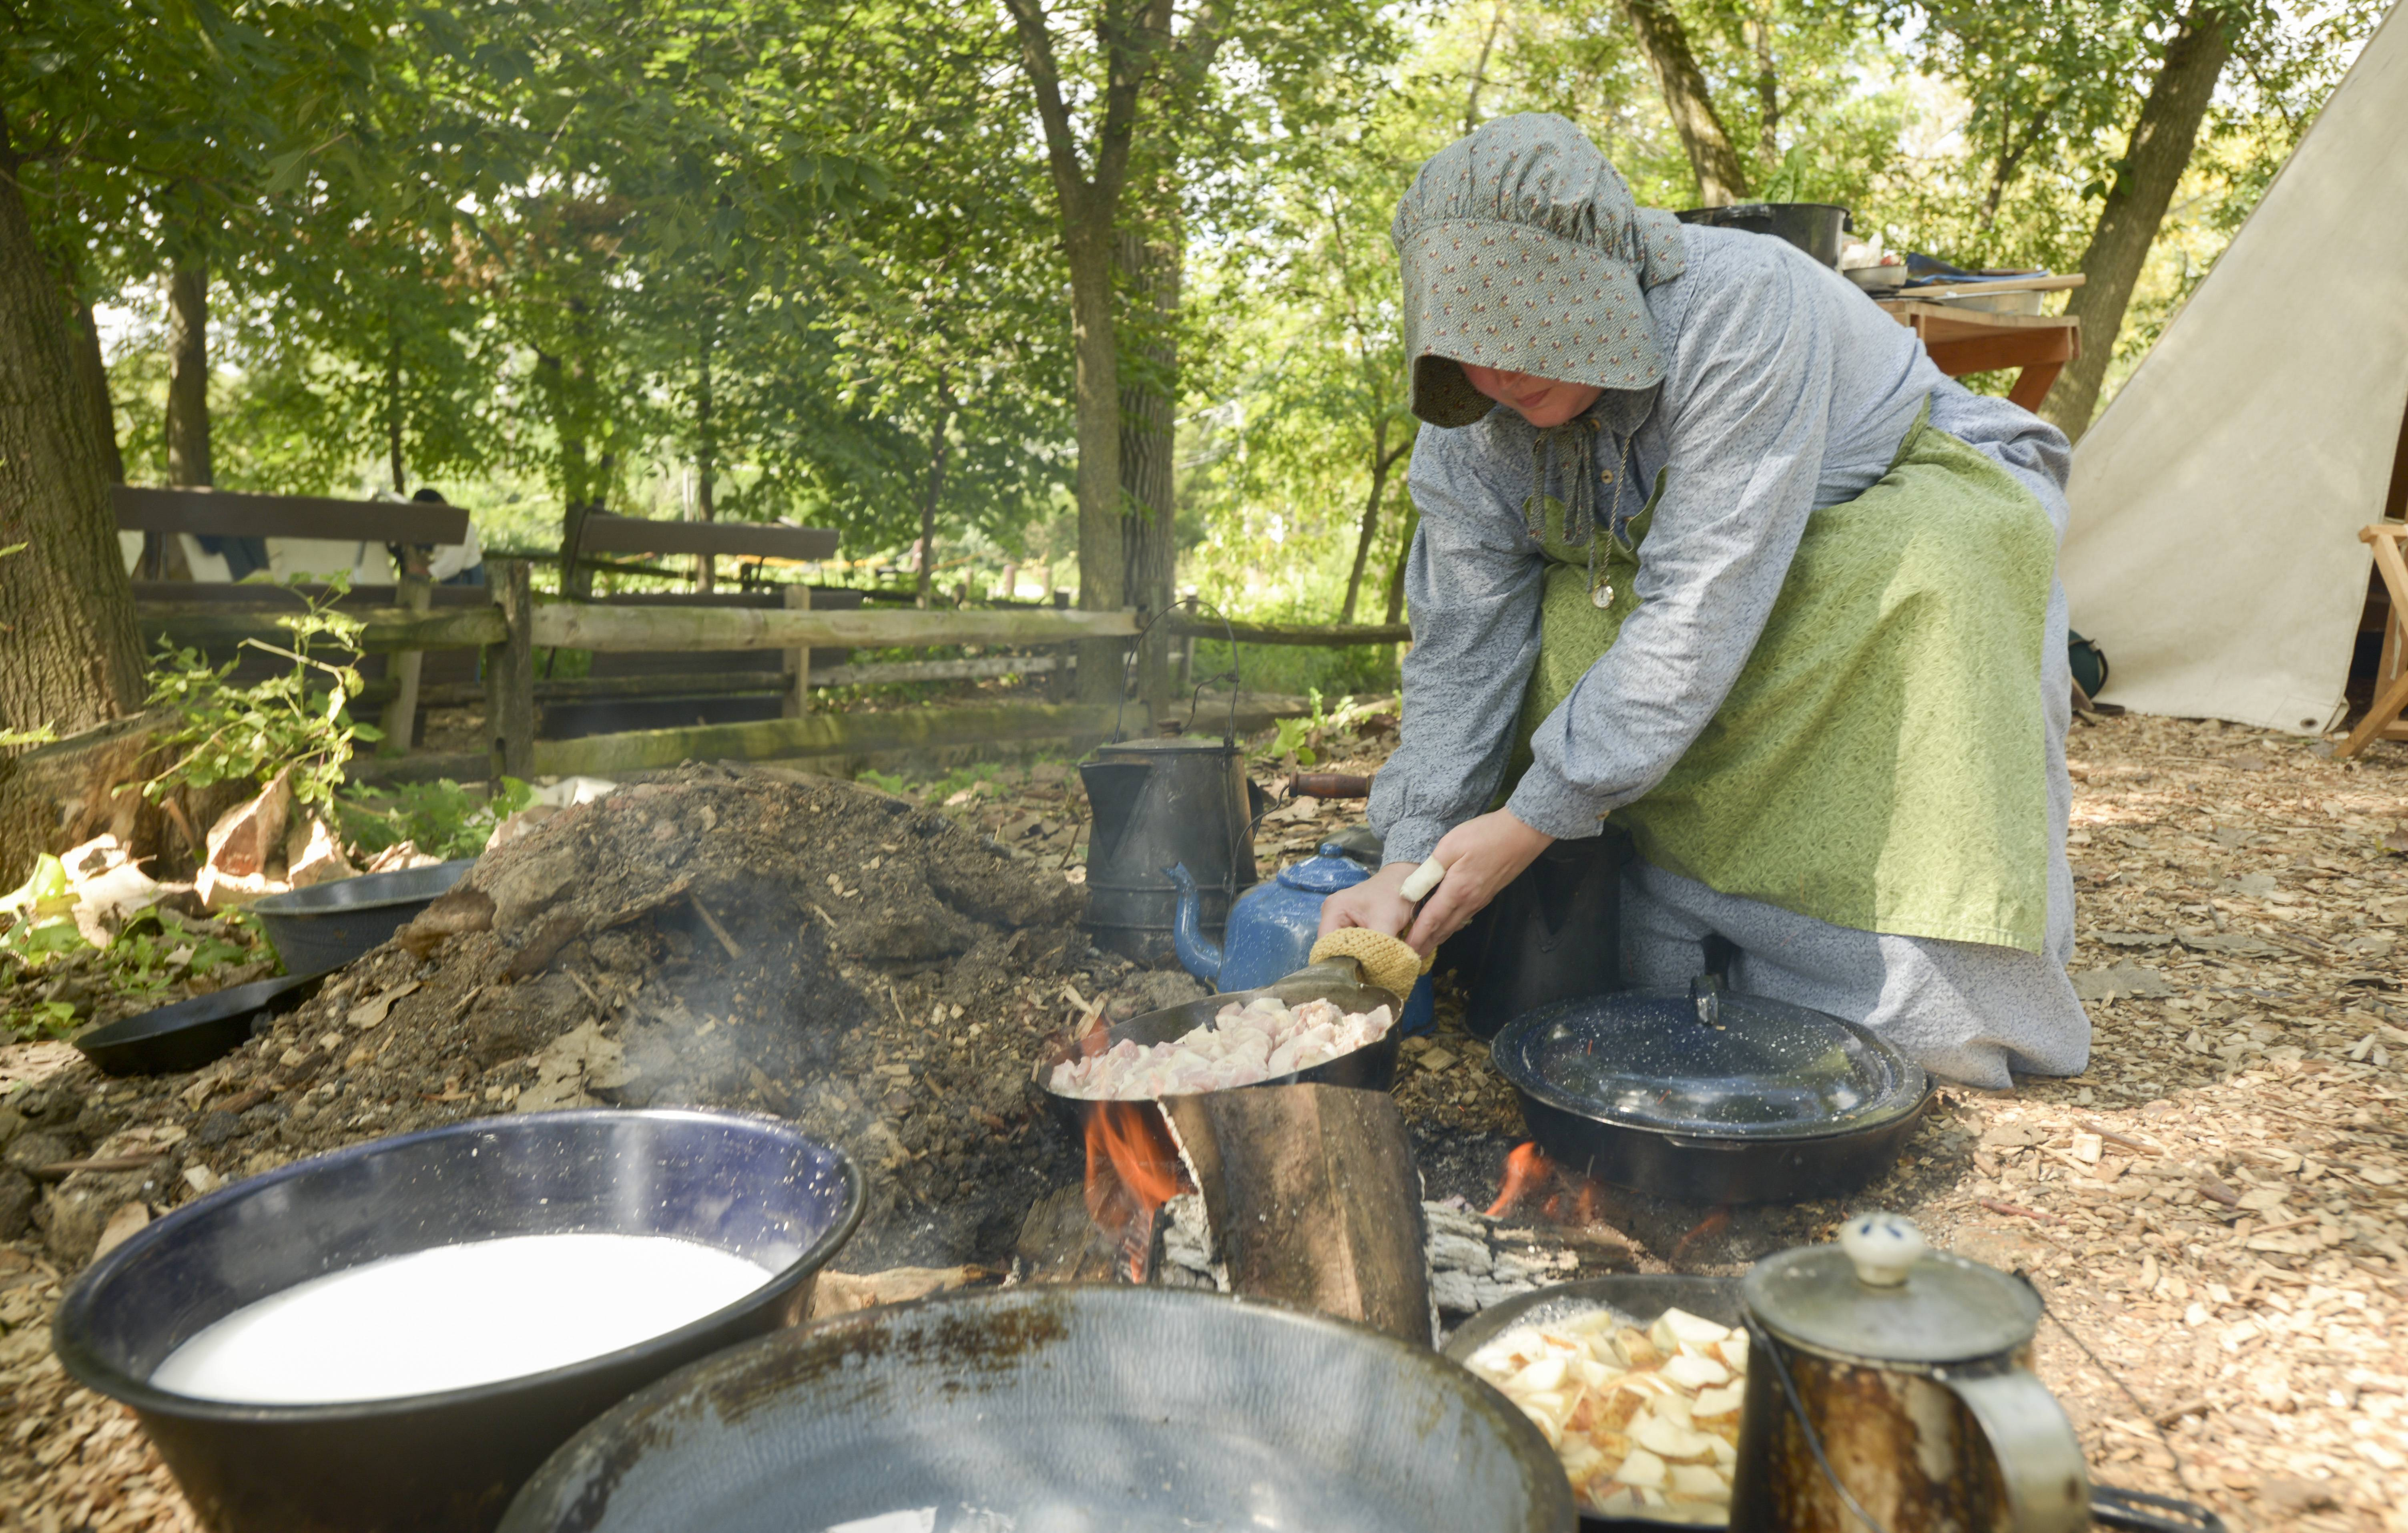 Luetta Coonrod of Lombard demonstrates how food was cooked at Union Army camps during the Civil War Encampment on Sunday at Graue Mill and Museum in Oak Brook. the event also featured combat and medical demonstrations from the Civil War era.